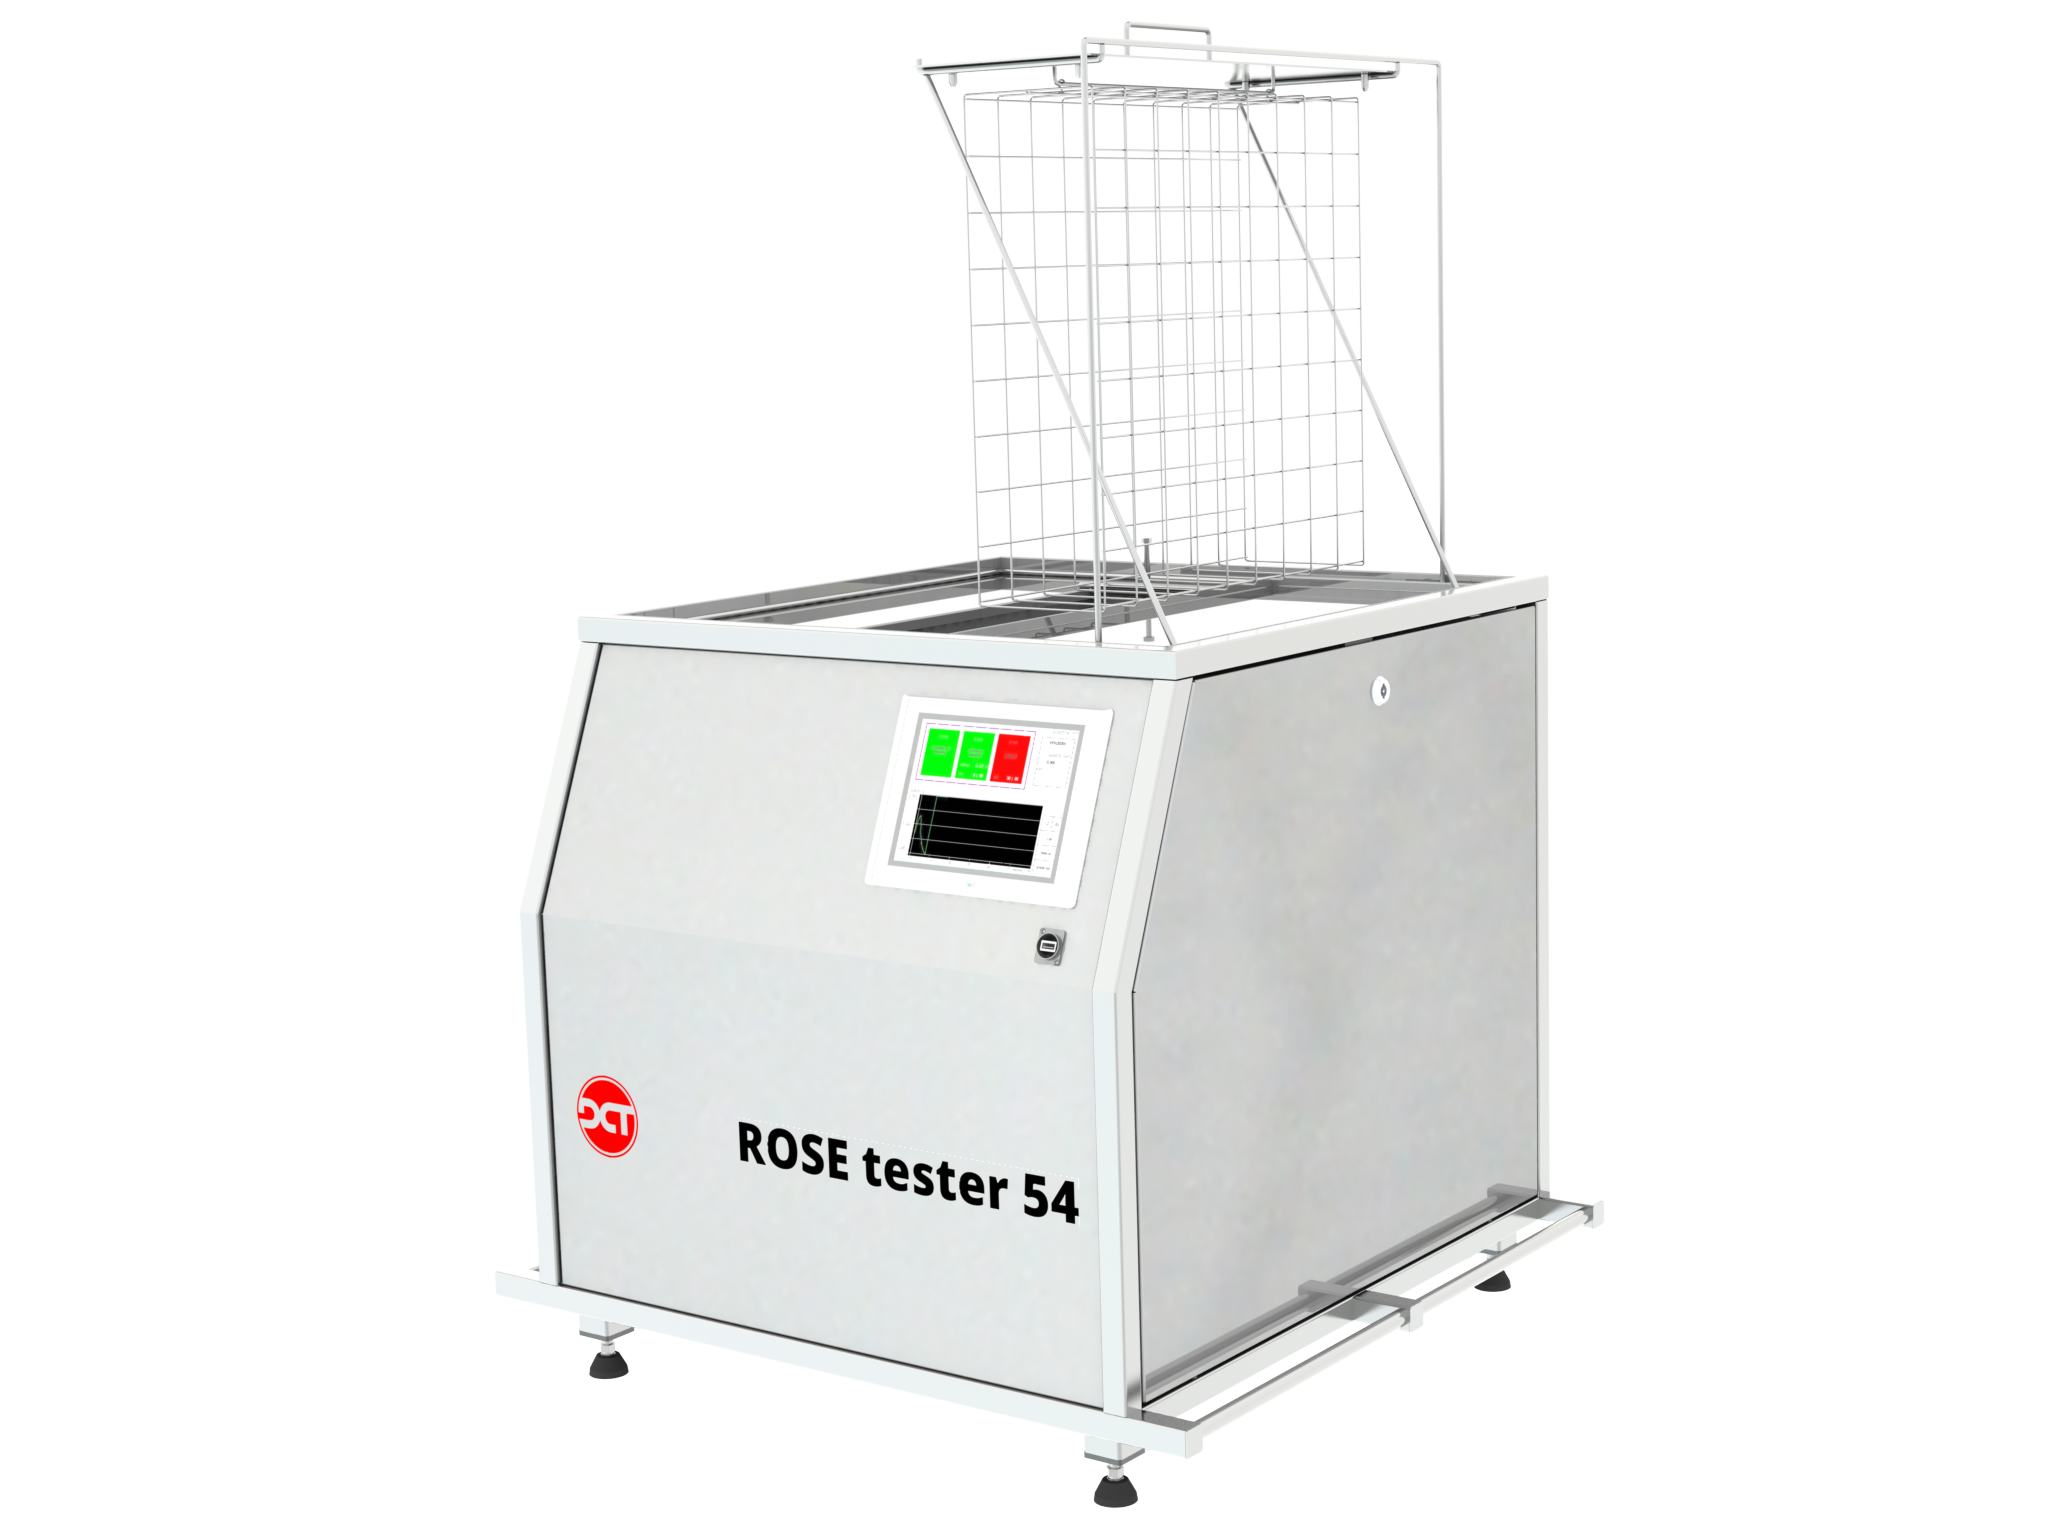 ROSE tester 54 - Ionic contamination testing